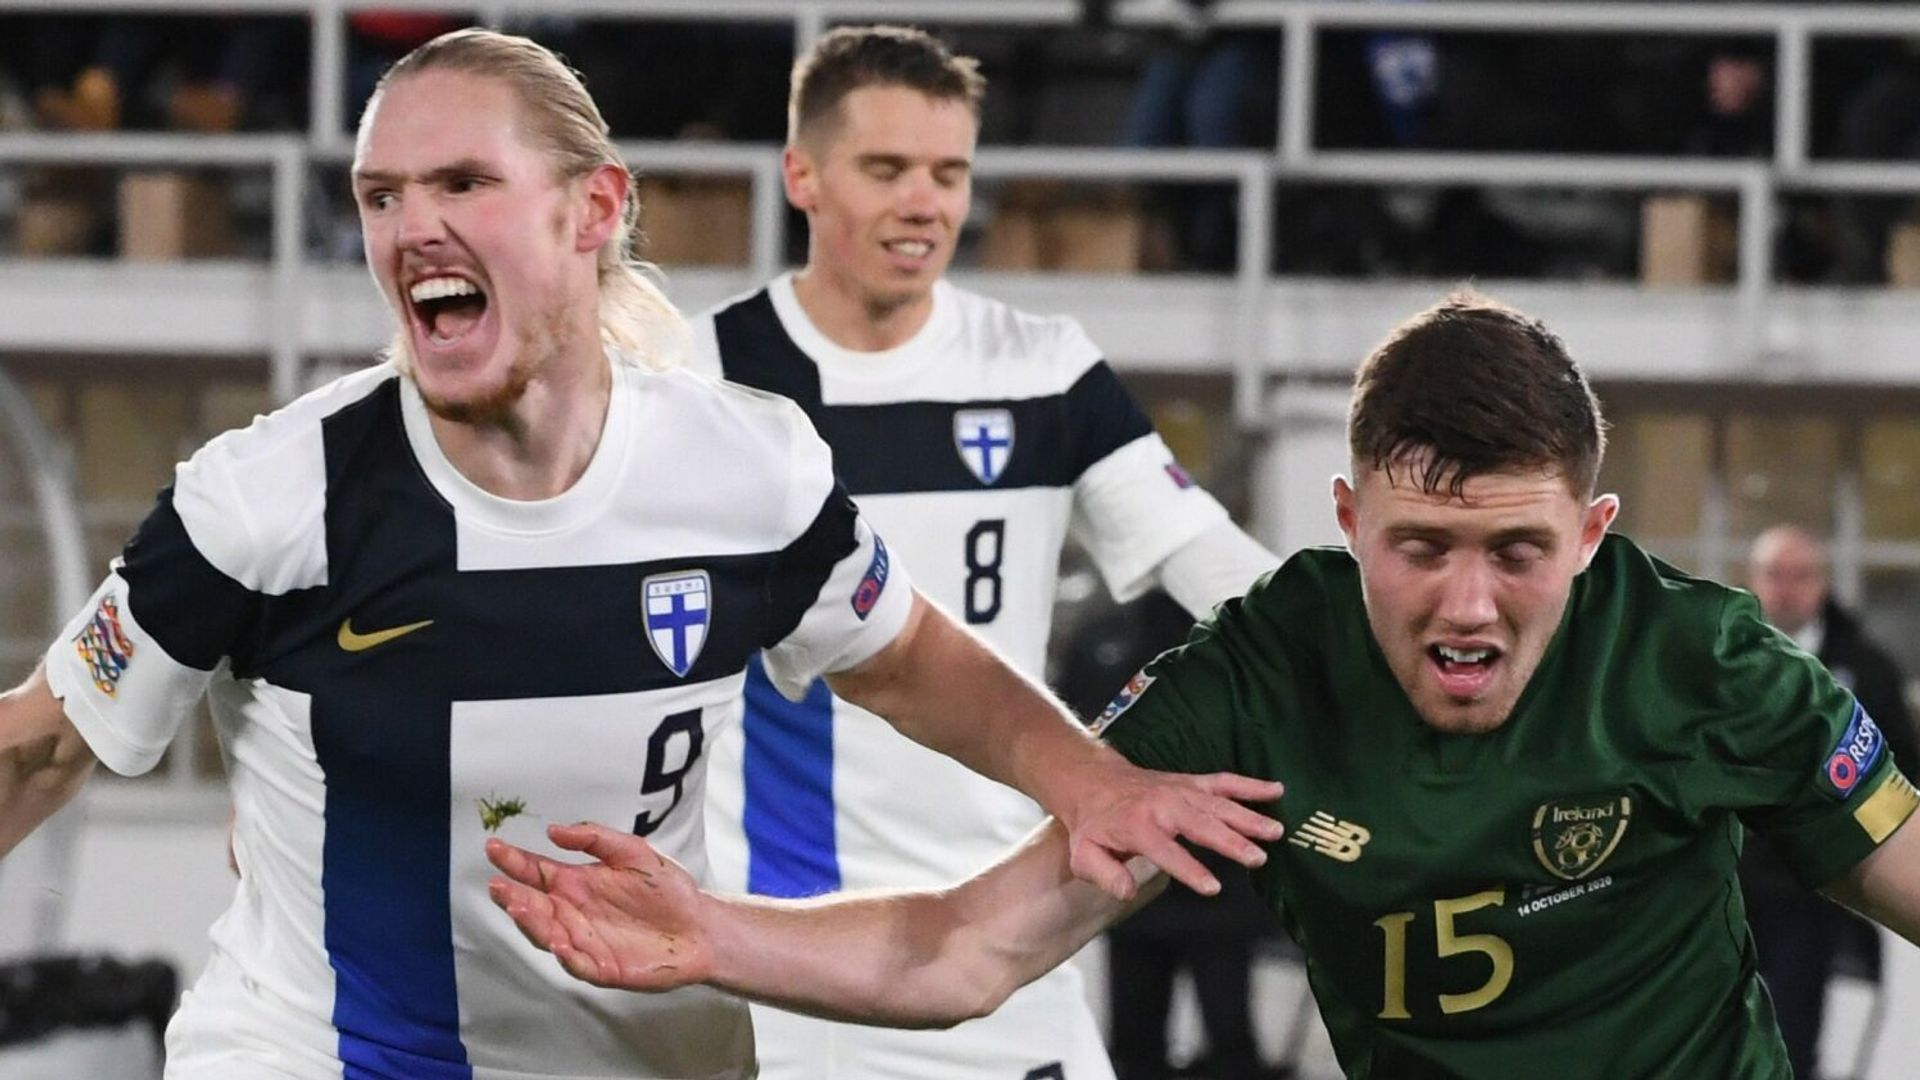 Rep of Ireland poor form continues in Finland defeat